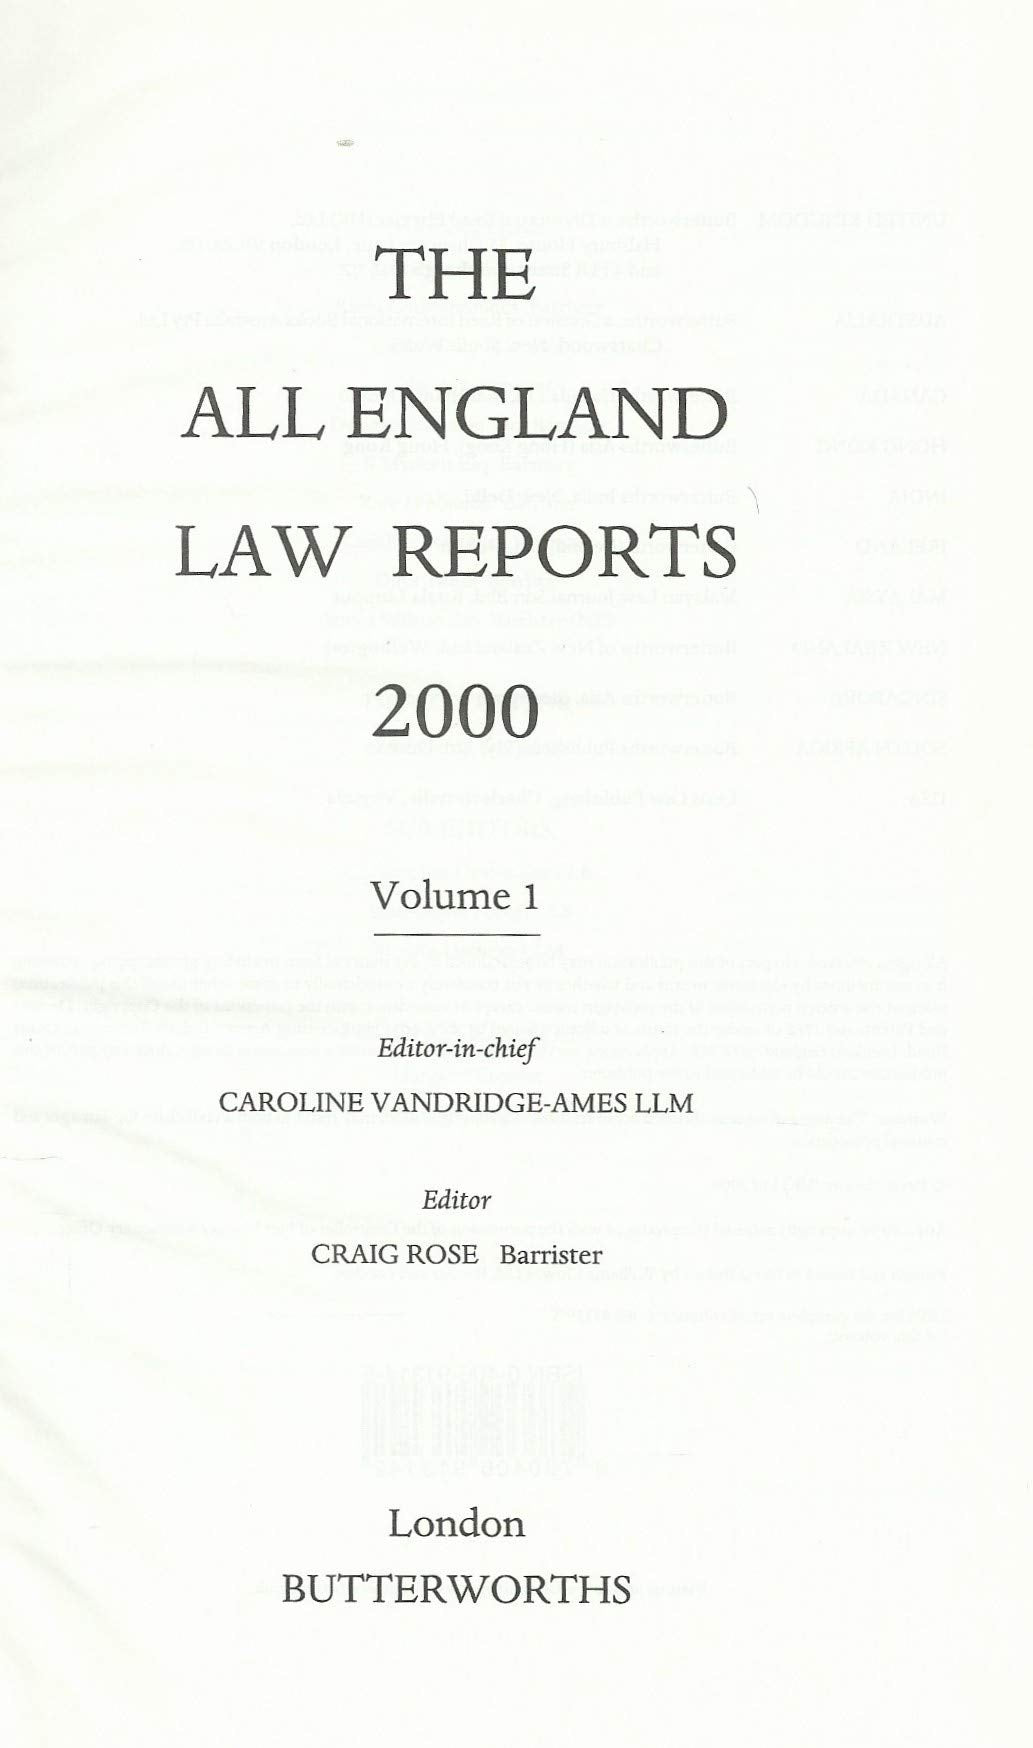 The All England Law Reports 2000: Vol 1